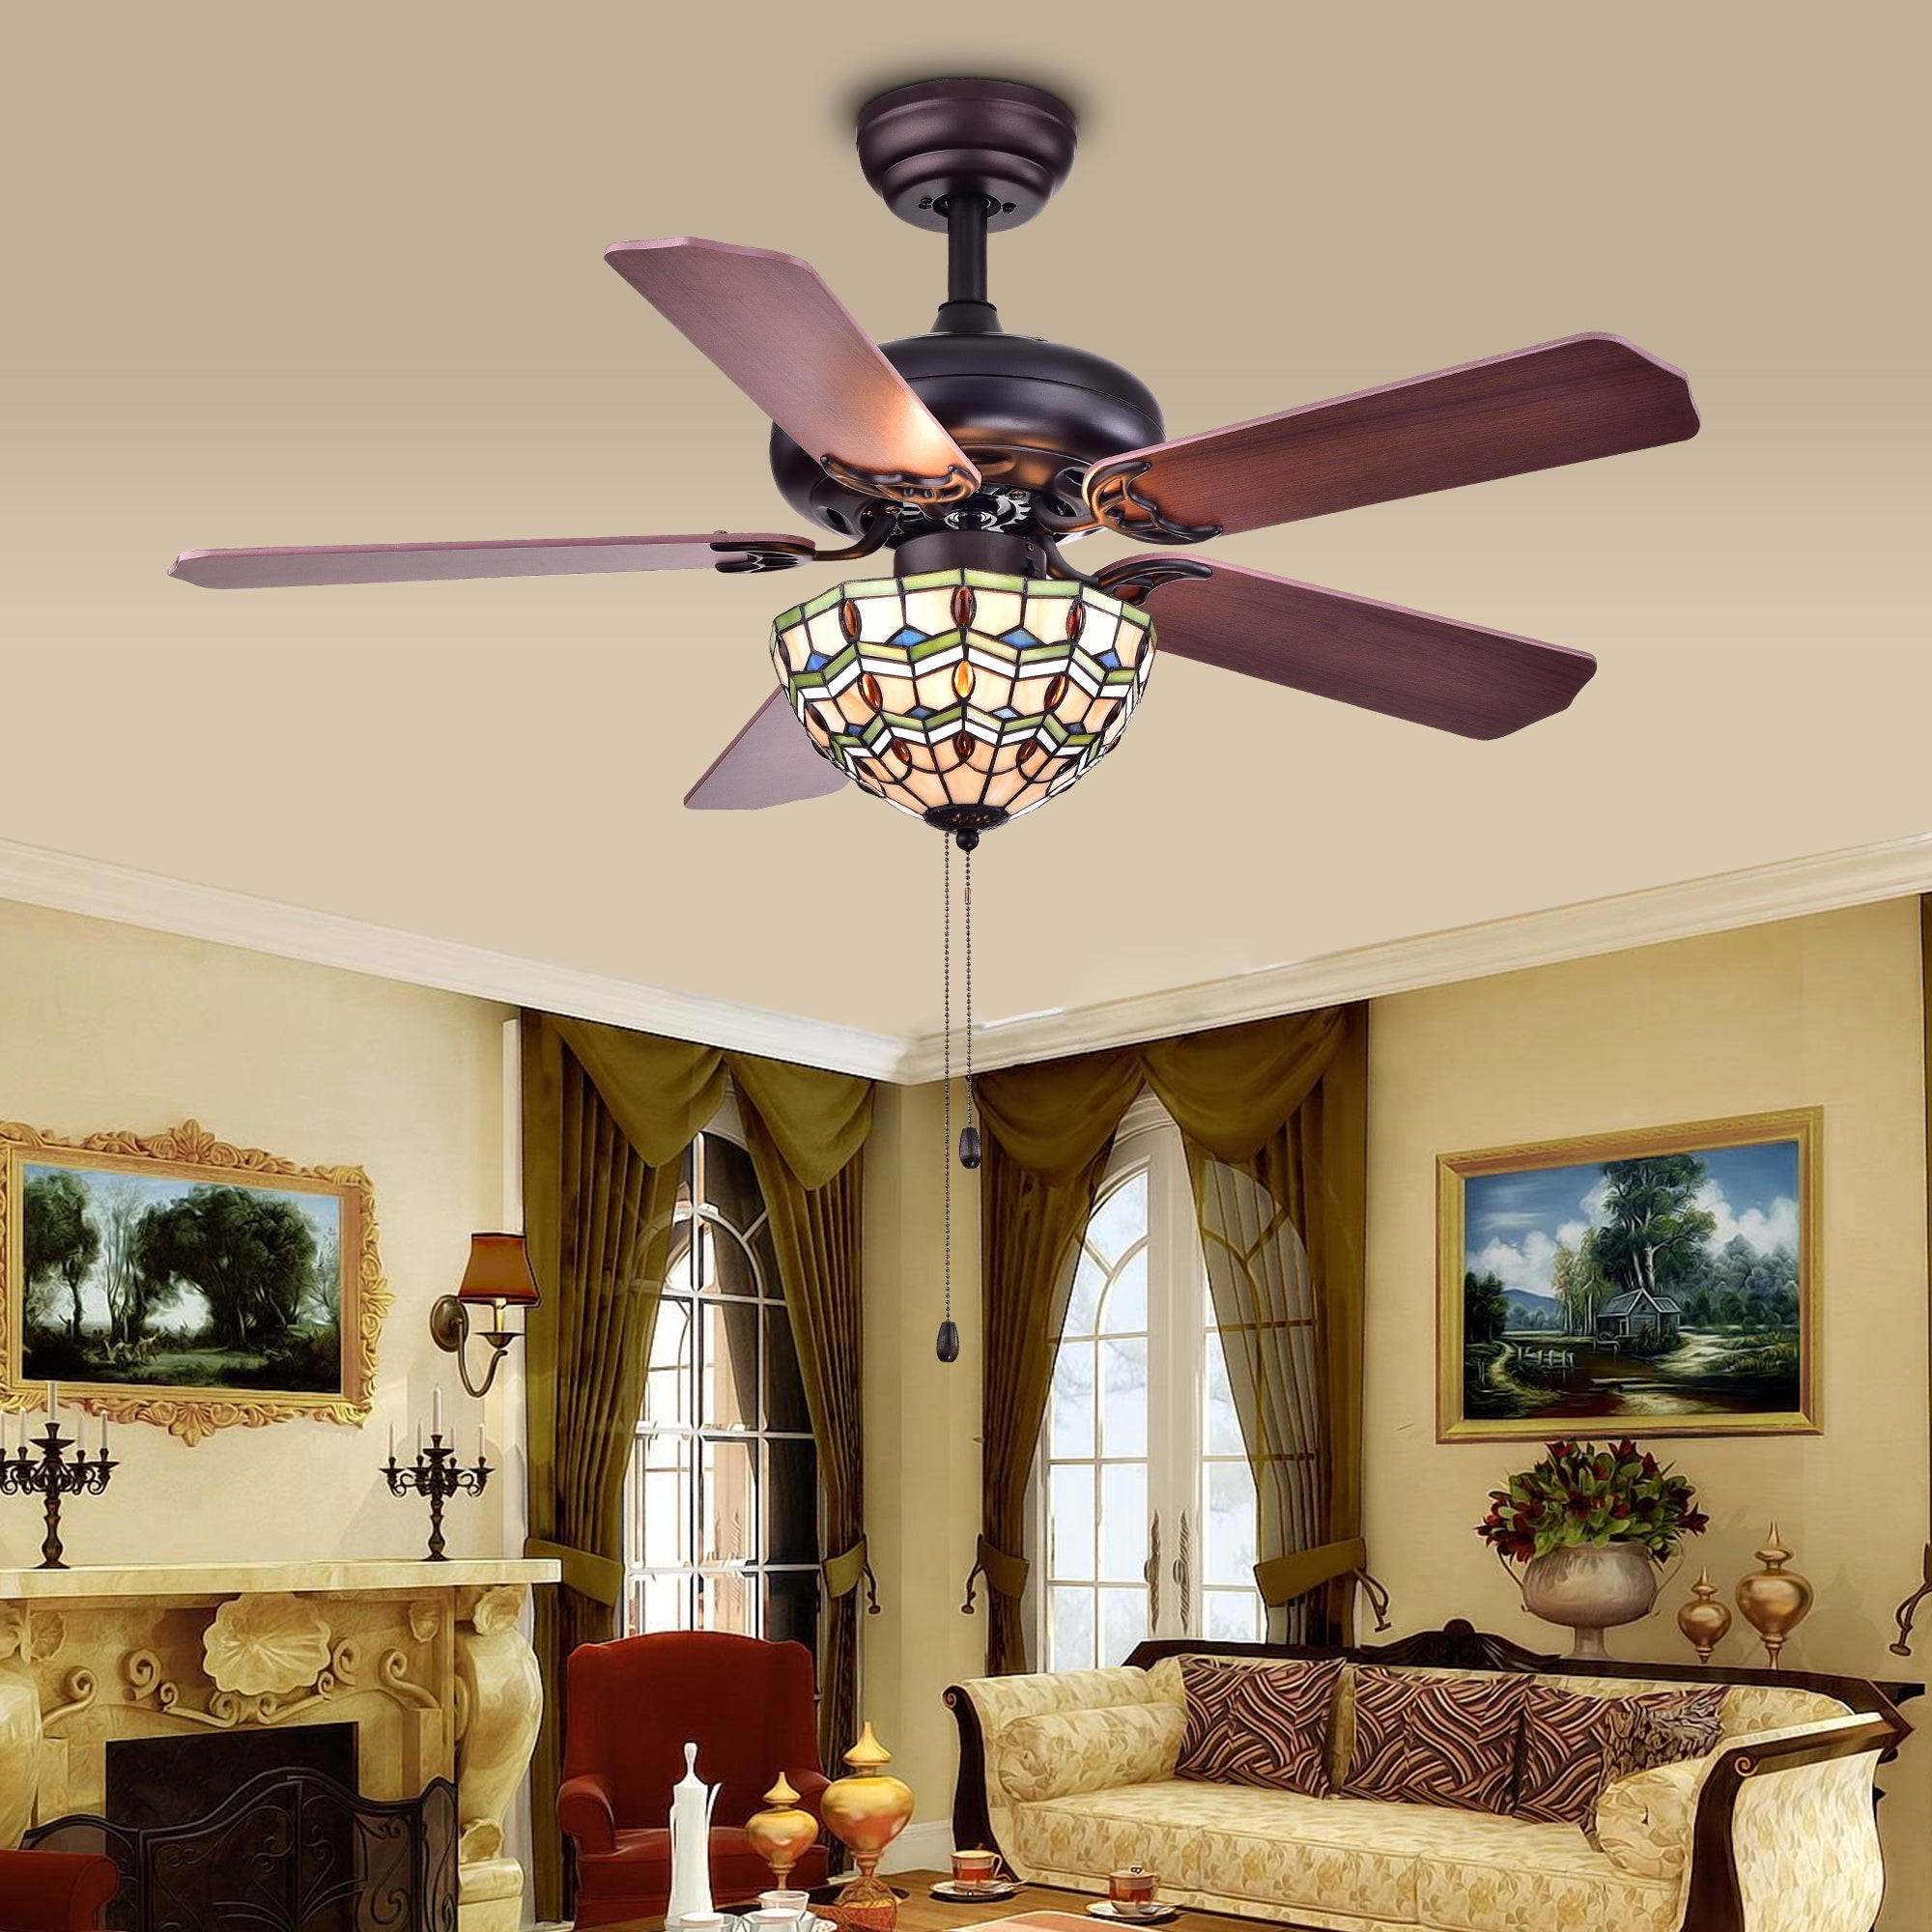 lily tiffany matte product shipping today free home fan kalsti black ceiling garden blade light inch overstock